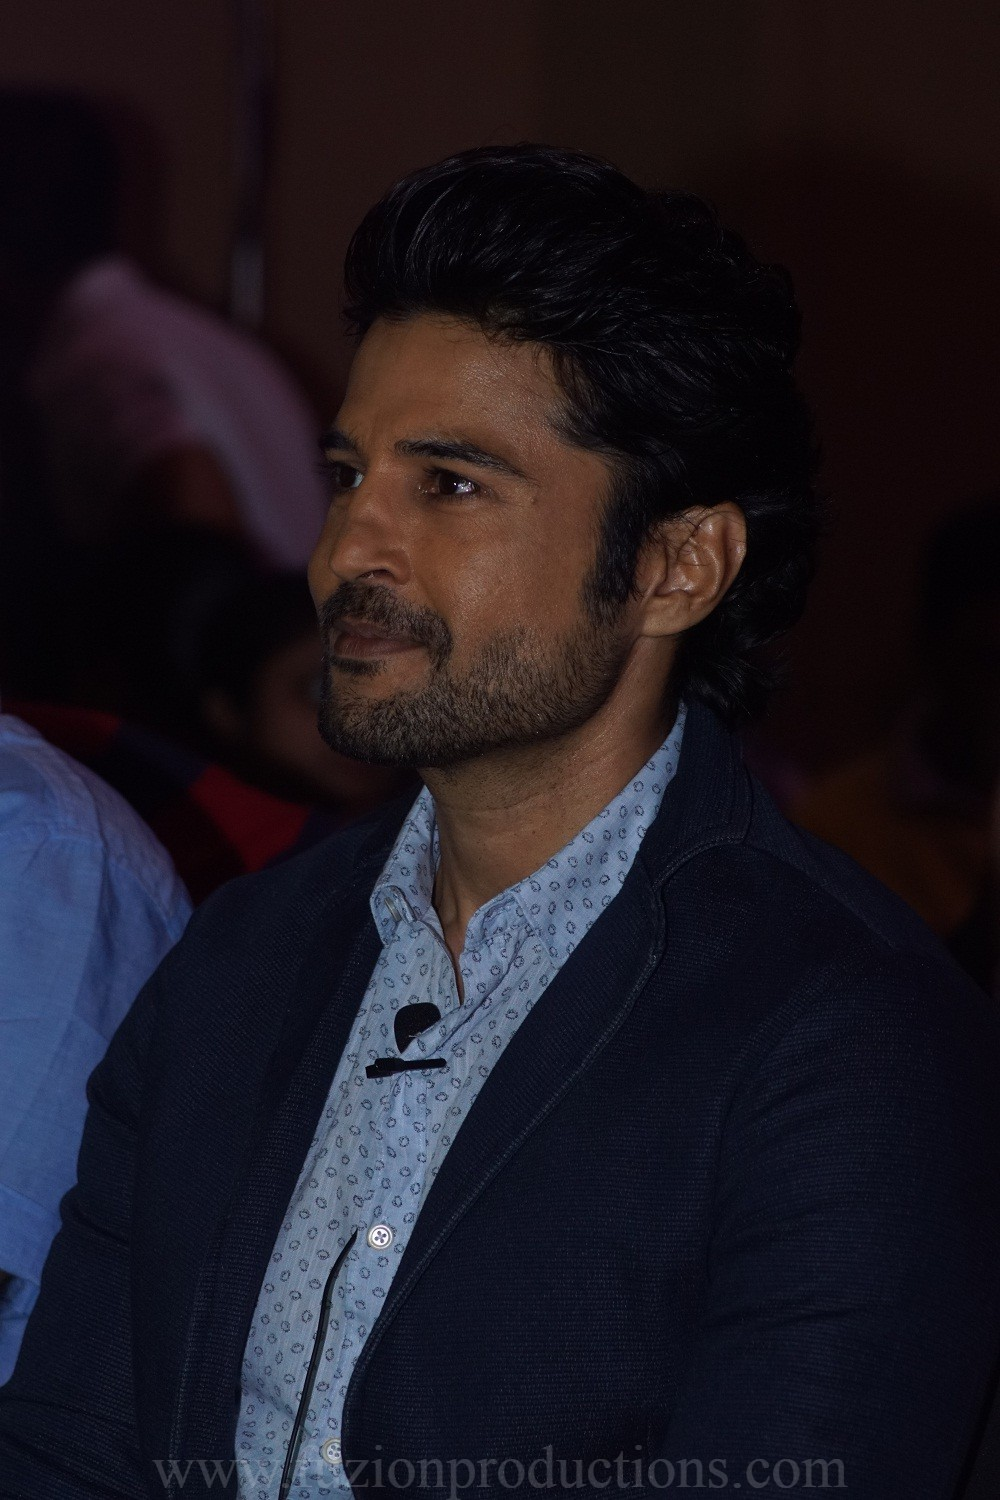 Pictures of rajeev khandelwal 35 Short Stacked Bob Hairstyles Short Hairstyles 2017